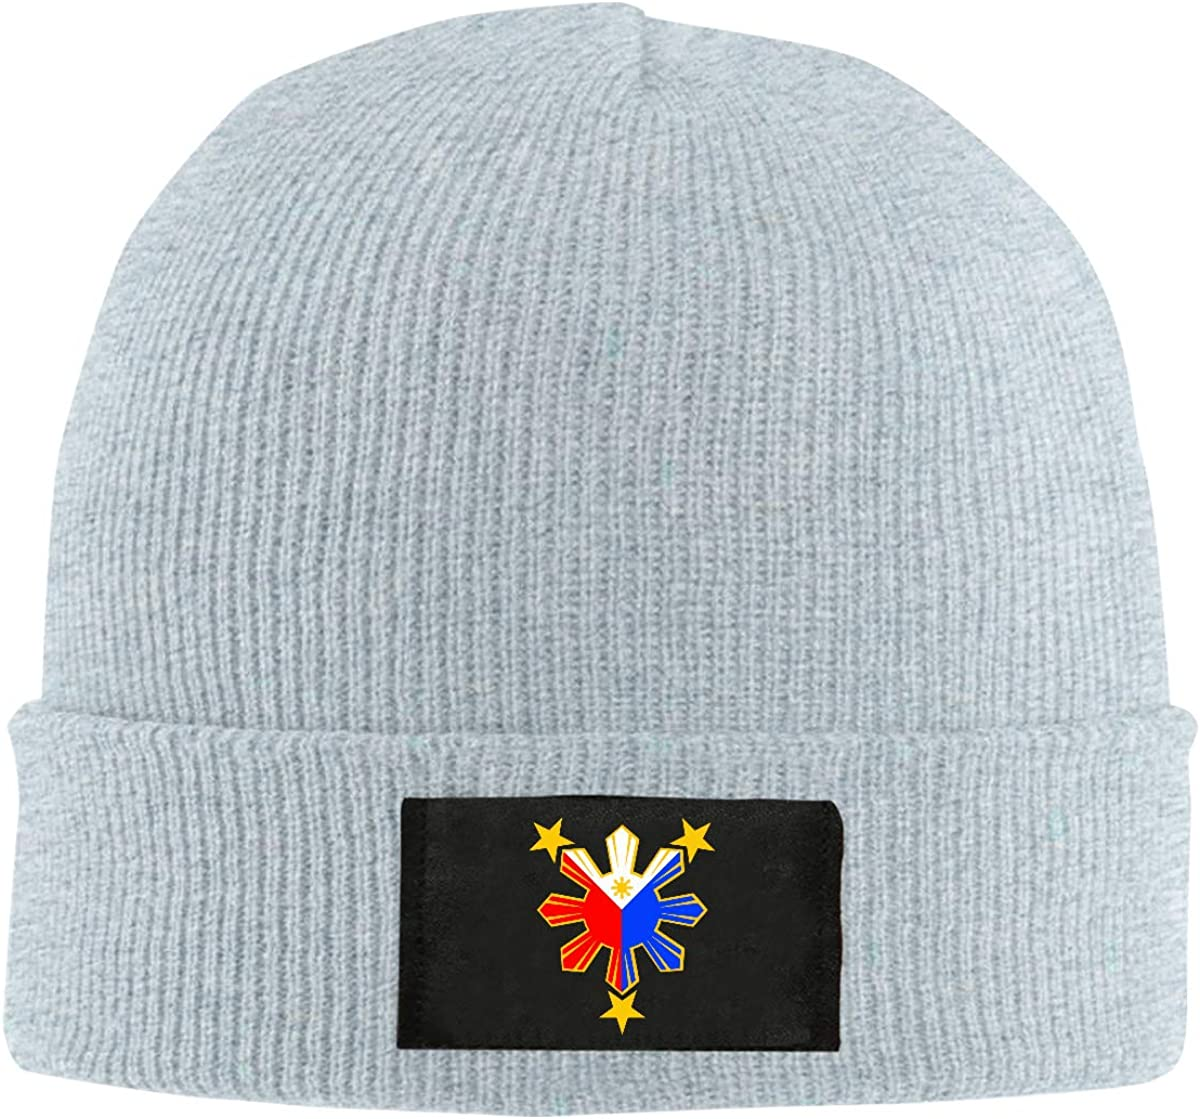 100/% Acrylic Fashion Skiing Cap BF5Y6z/&MA Mens and Womens Flag of The Philippines Knitting Hat